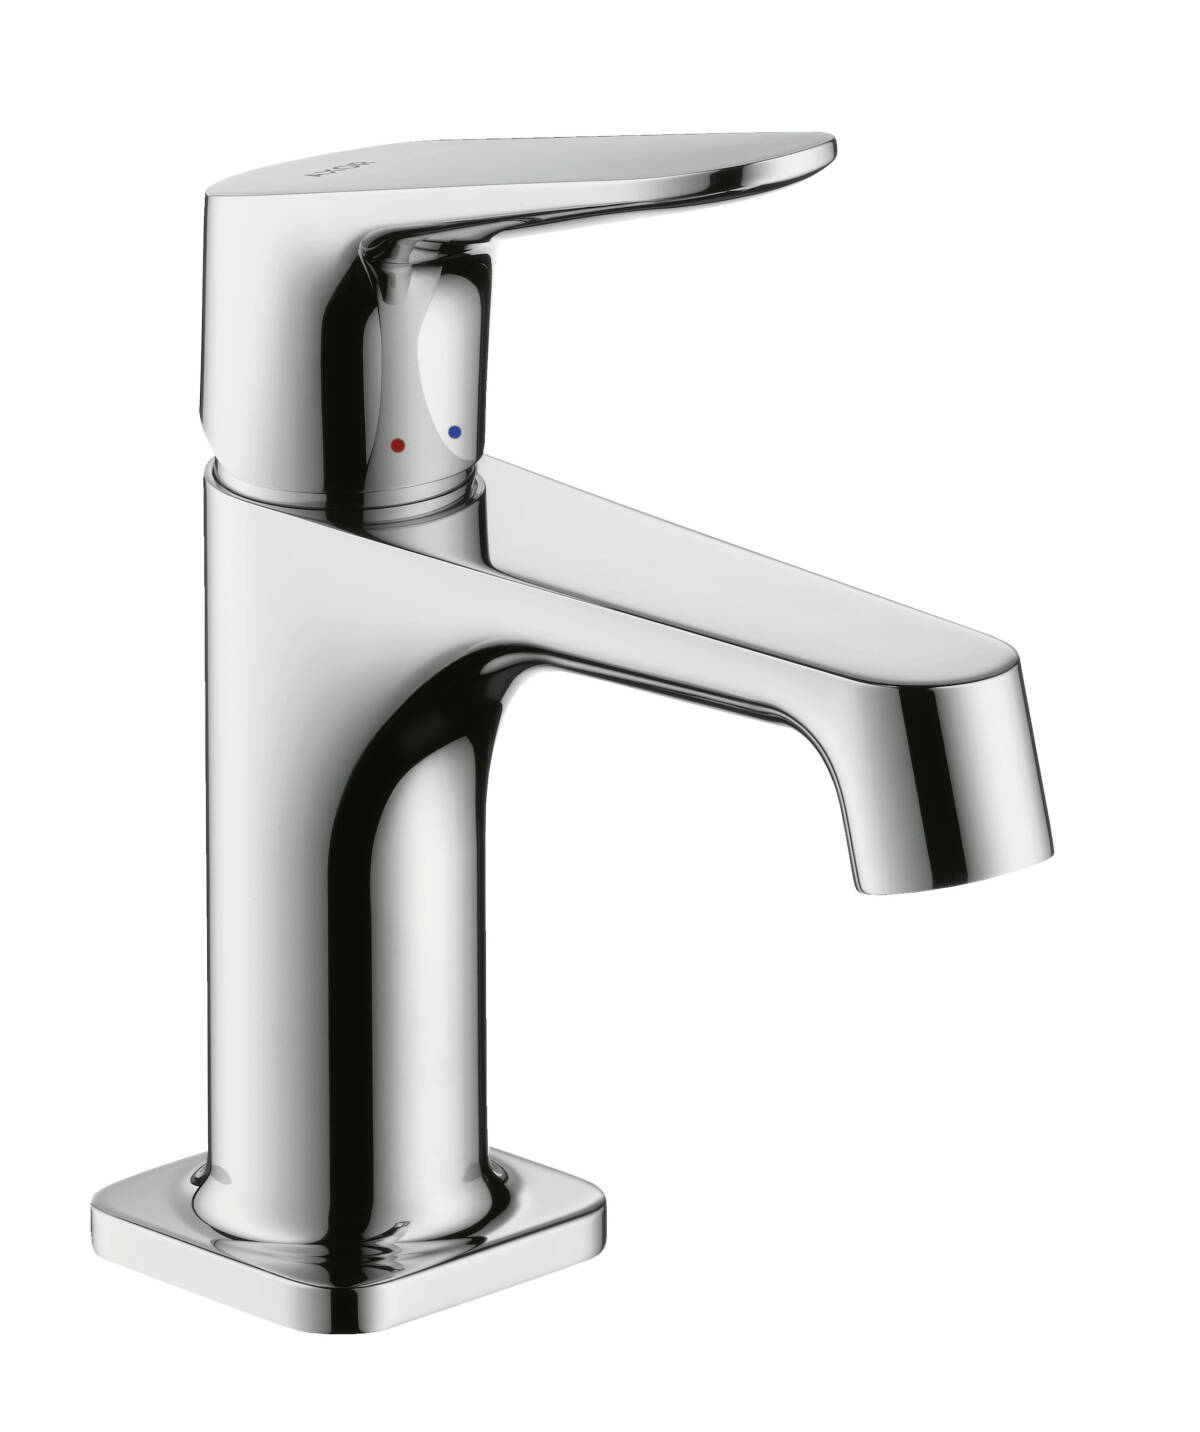 Single lever basin mixer 70 for hand washbasins with pop-up waste set, Brushed Bronze, 34016140